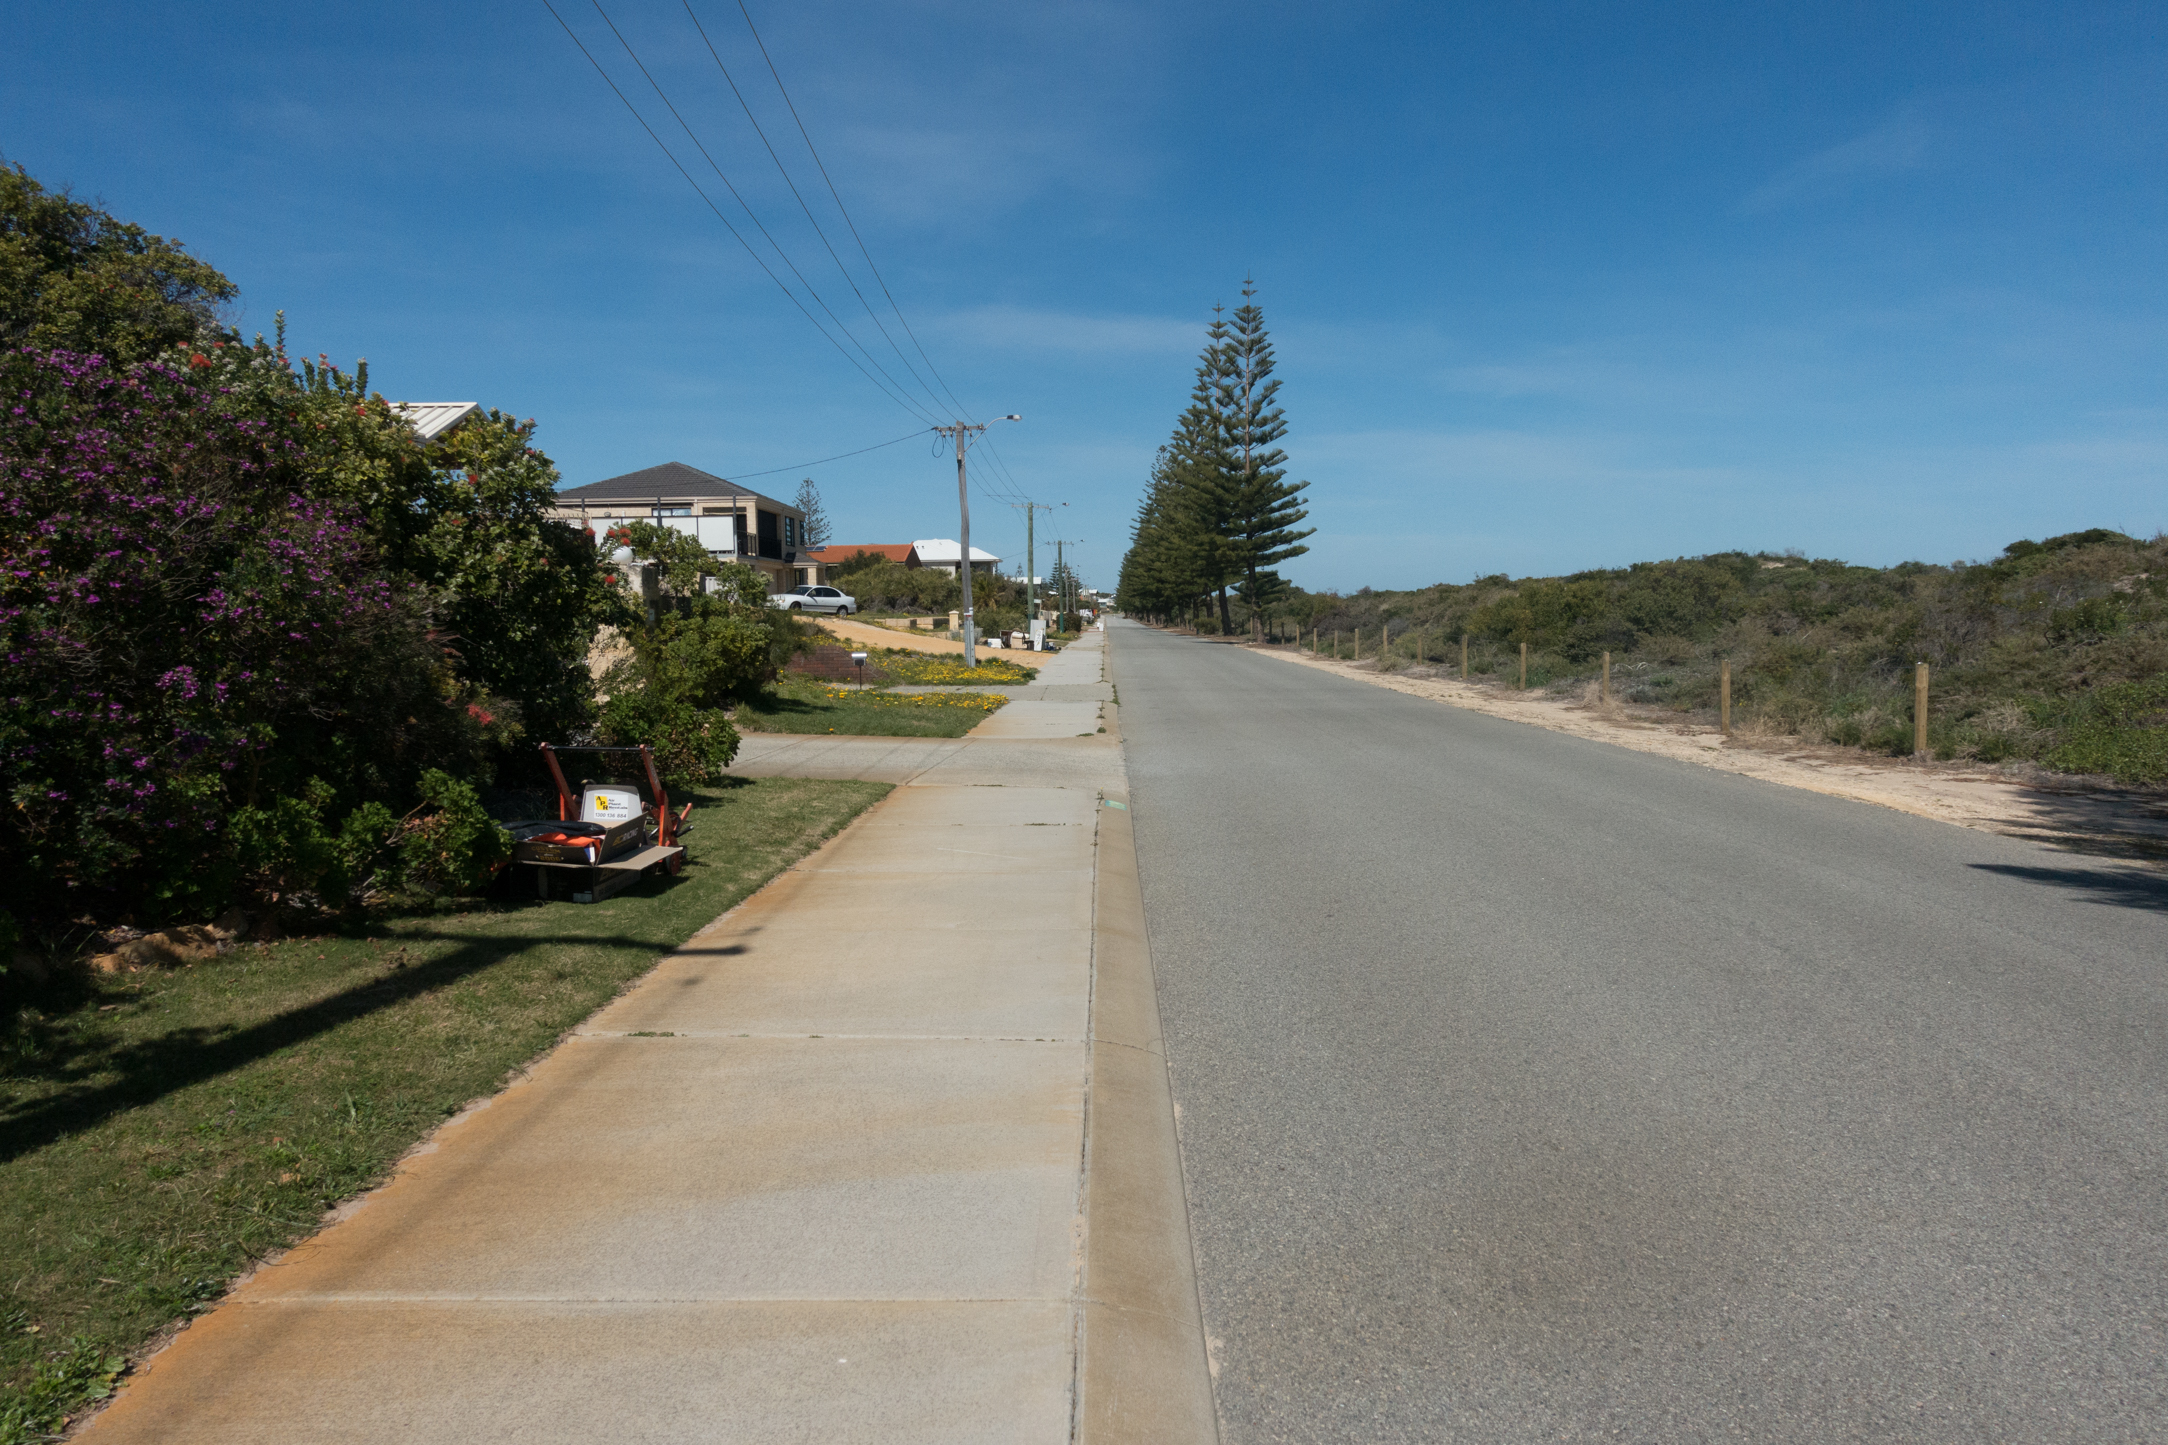 Plate 5: The path that runs parallel to Foreshore Drive